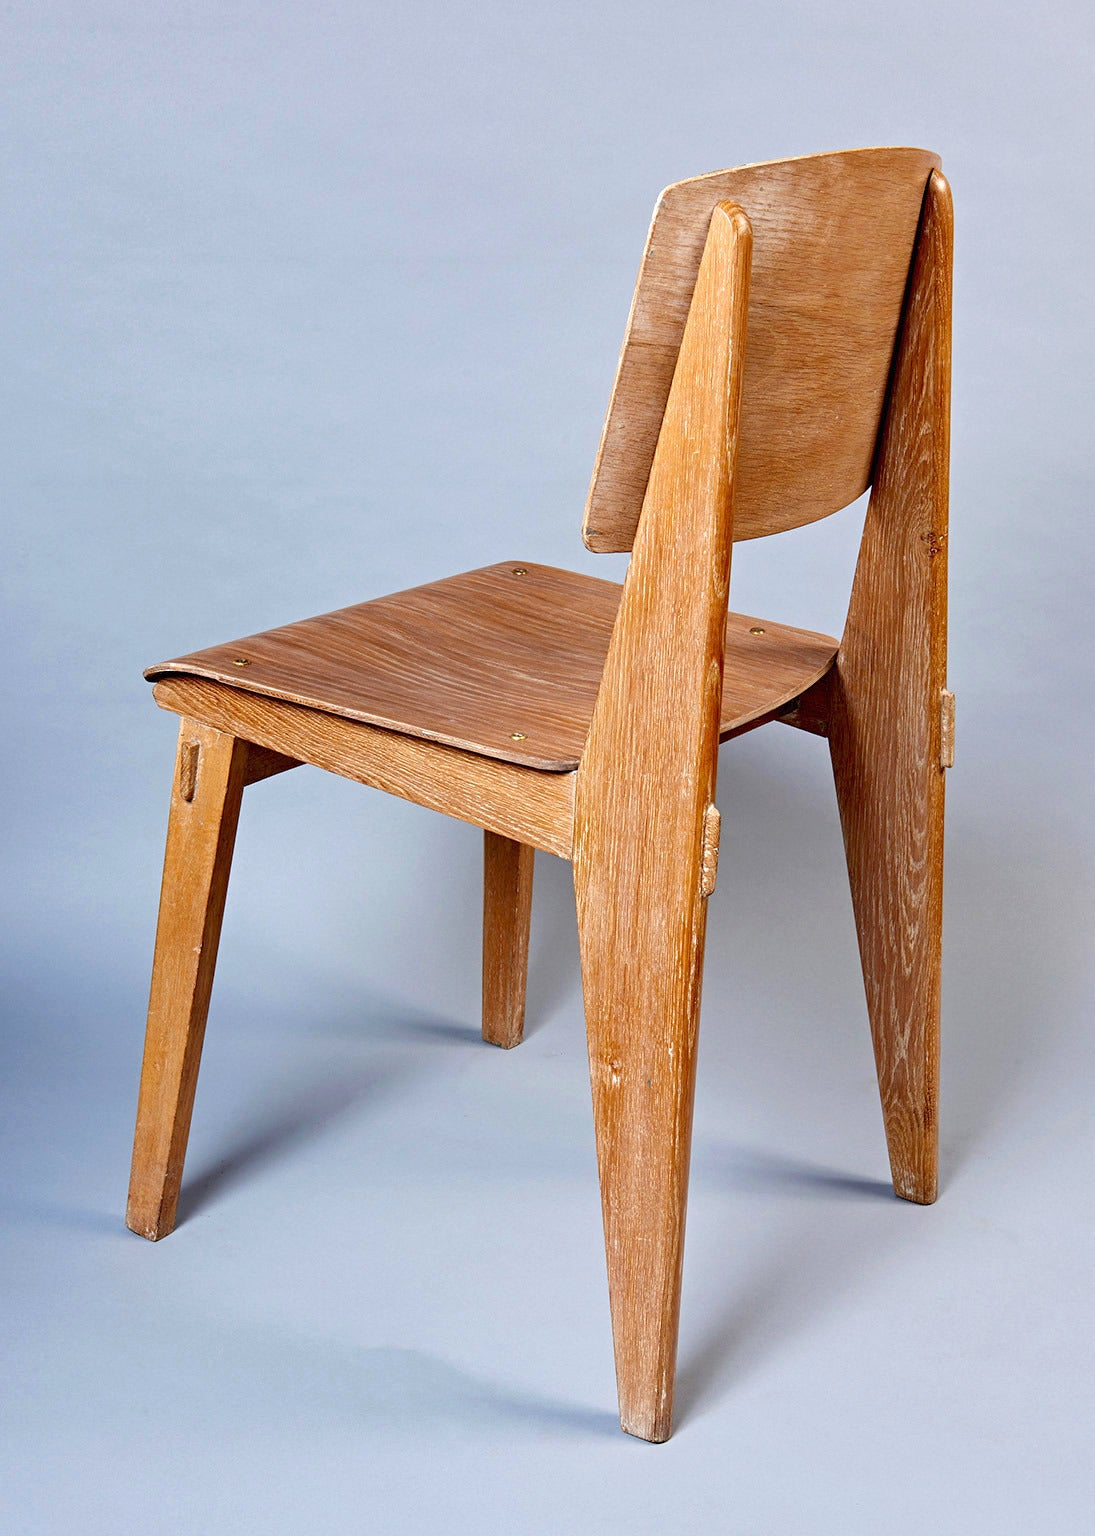 """Populaire Standard Chair """"Tout Bois"""" by Jean Prouvé at 1stdibs HY27"""